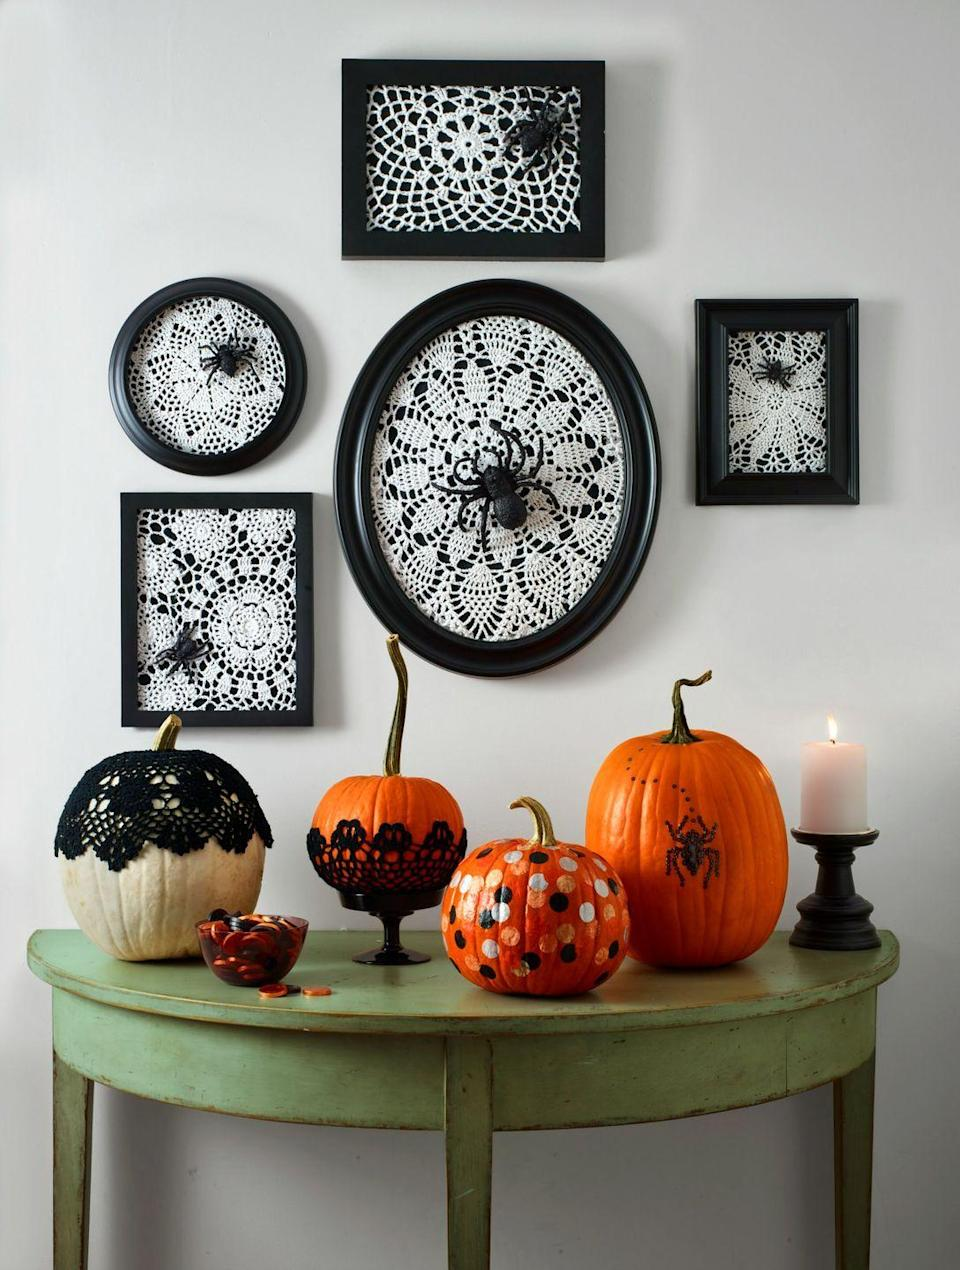 """<p>Hot-glue a doily around the bottom of a pumpkin, or position it on top and cut a hole for the stem. </p><p><strong>What You'll Need:</strong> <a href=""""https://www.amazon.com/Silver-Embossed-Round-Cake-Board/dp/B079VGRP1B/ref=sr_1_5?dchild=1&keywords=doily&qid=1594917784&refinements=p_n_srvg_2947266011%3A3254098011&rnid=2947266011&sr=8-5&tag=syn-yahoo-20&ascsubtag=%5Bartid%7C10070.g.1279%5Bsrc%7Cyahoo-us"""" rel=""""nofollow noopener"""" target=""""_blank"""" data-ylk=""""slk:Doilies"""" class=""""link rapid-noclick-resp"""">Doilies</a> ($6, Amazon);</p>"""